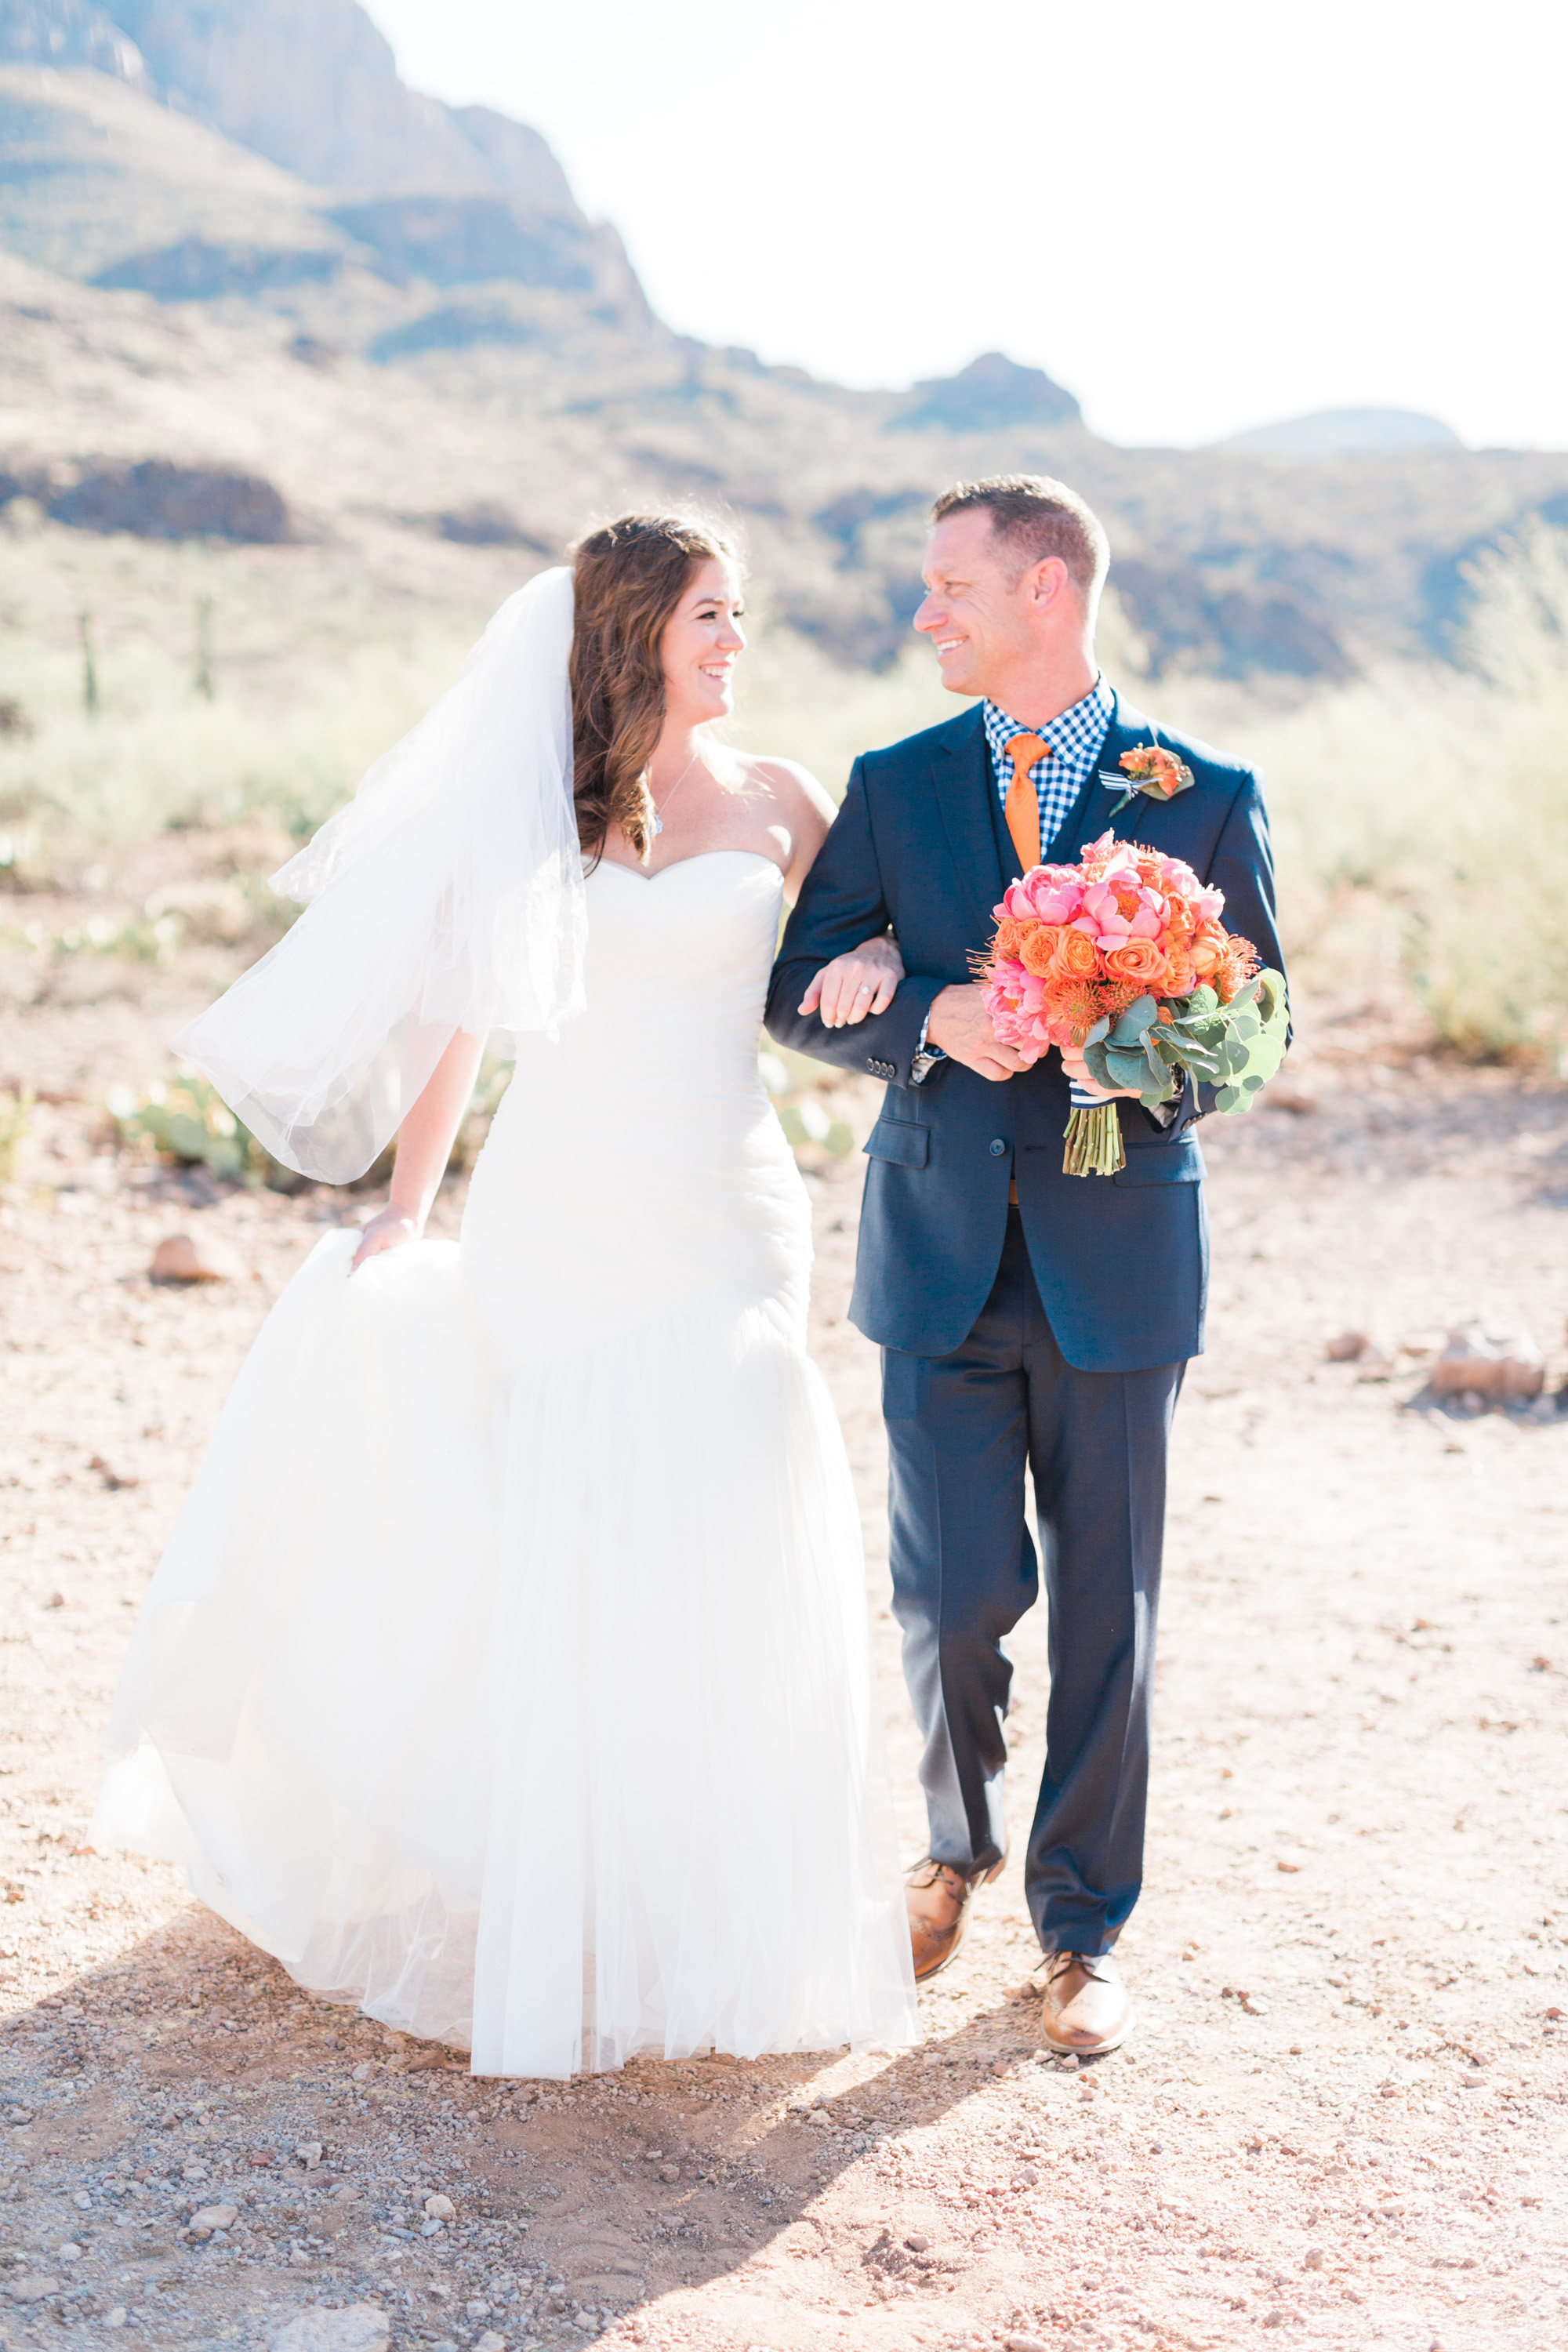 Bride and groom walking towards the camera. Groom holding bouquet and bride holding her dress. Love the light and airy feel of this beautiful Tucson summer wedding.